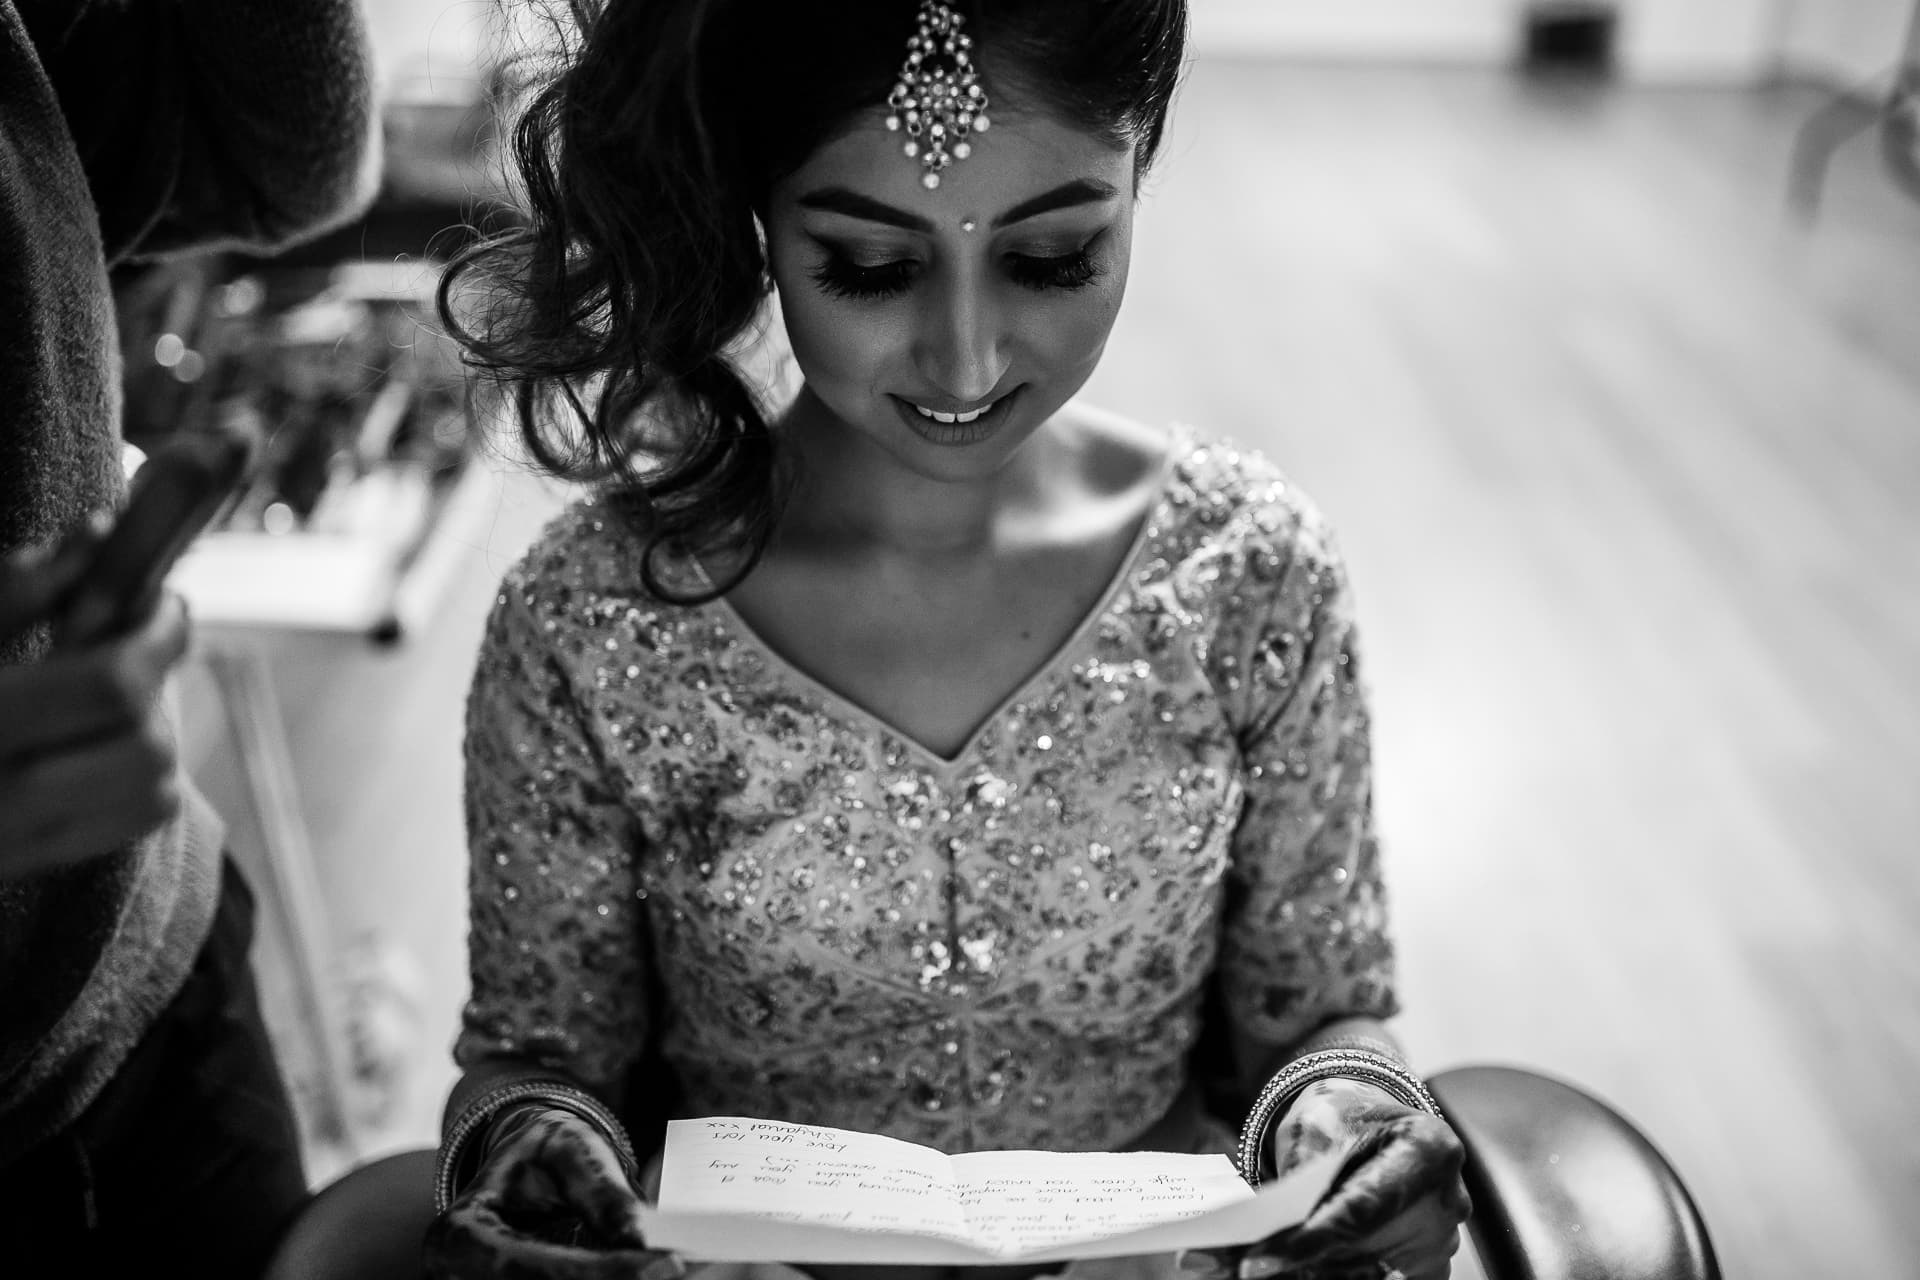 Asian Wedding Bride reading love letter